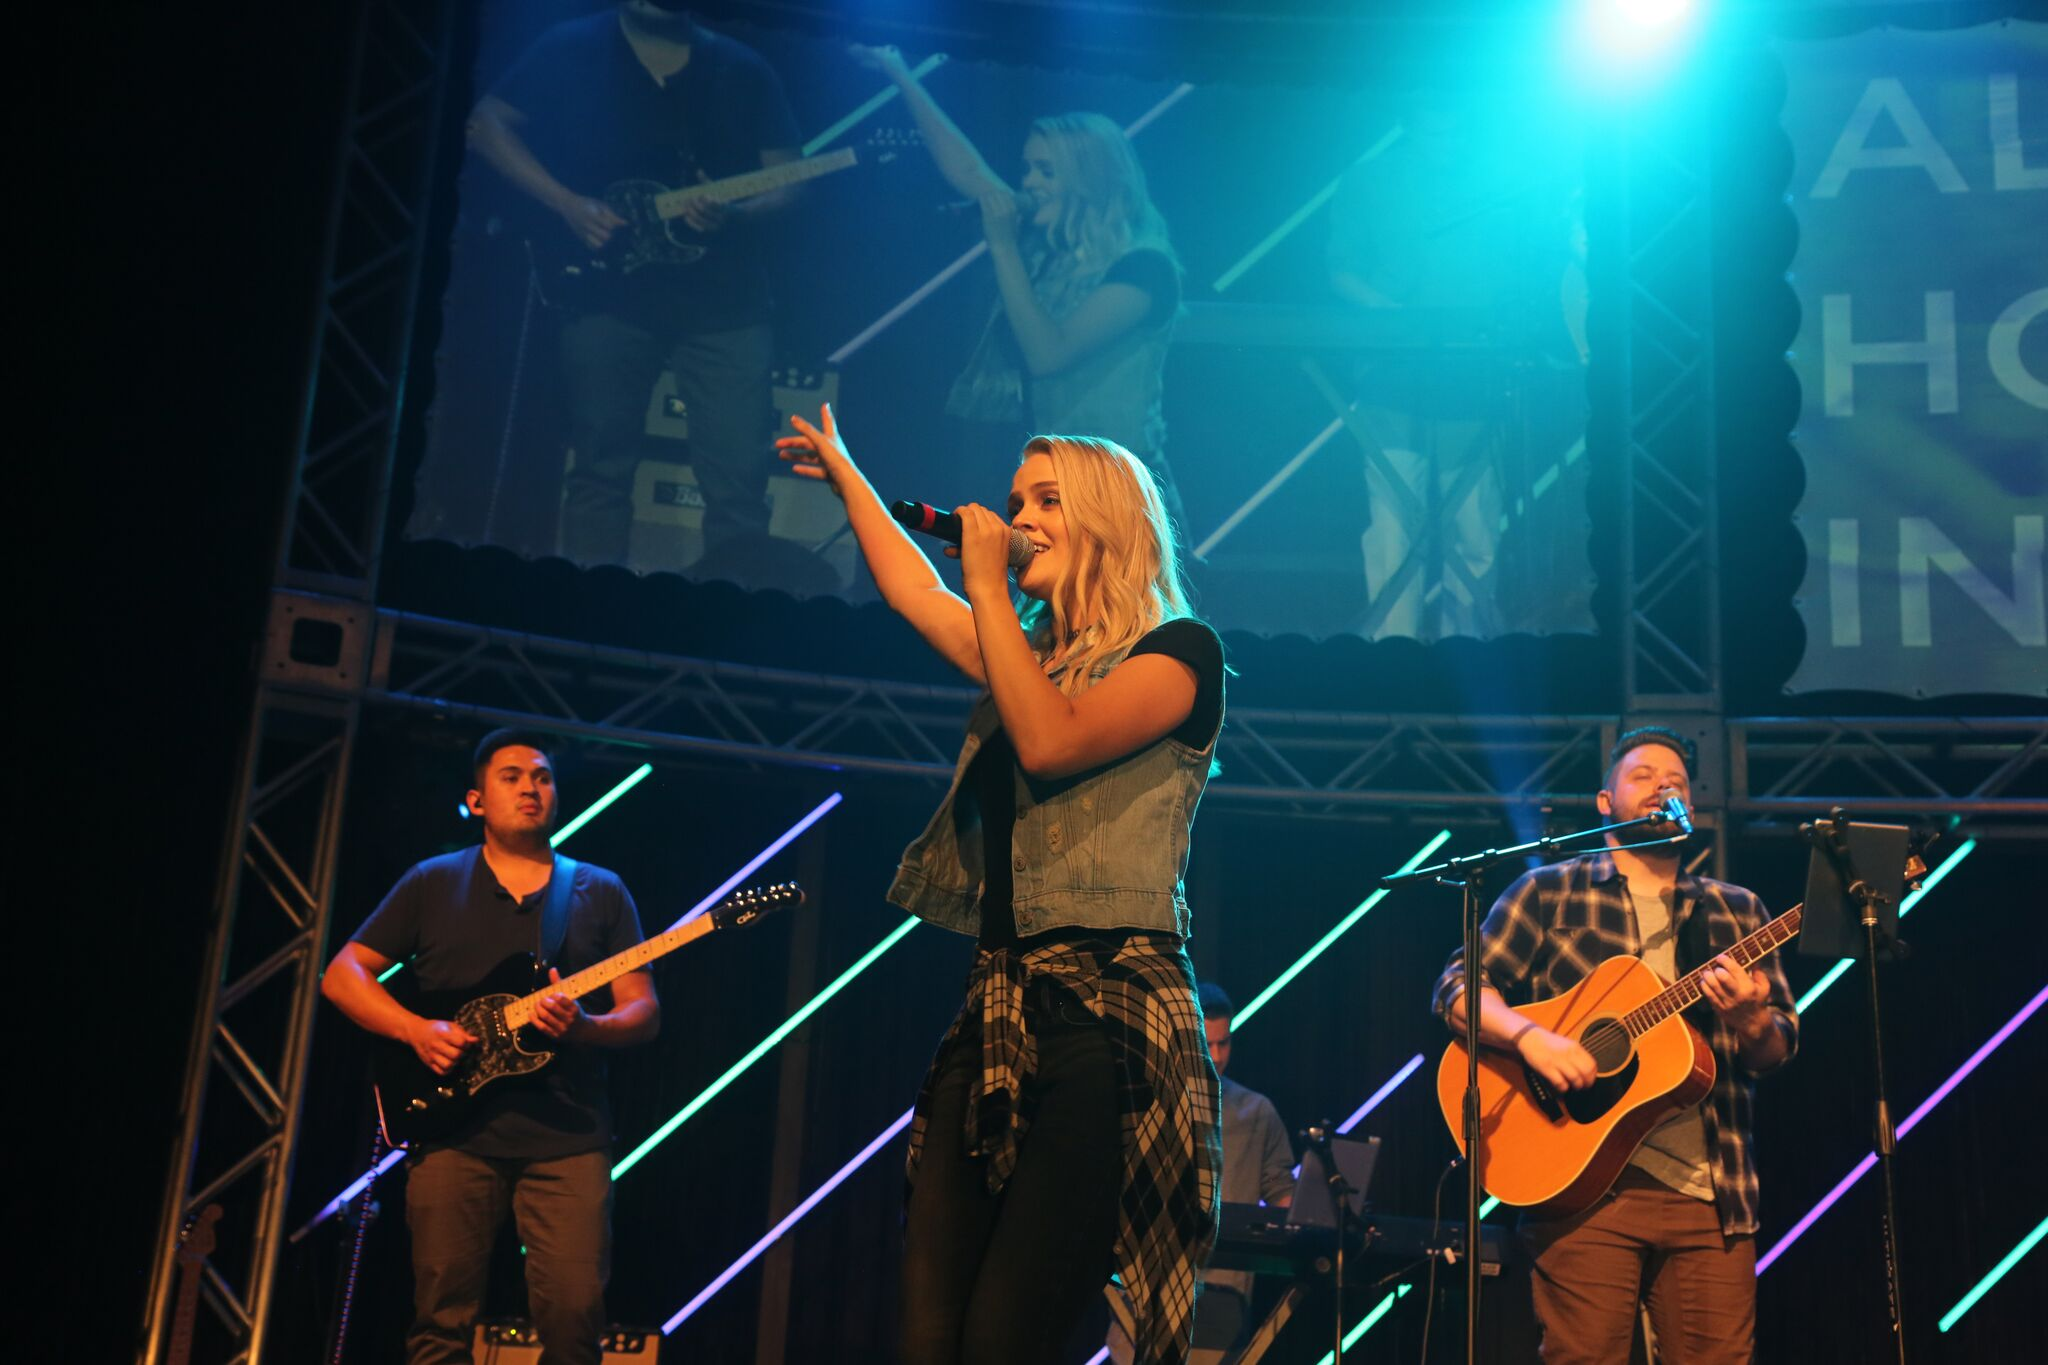 HORIZON WORSHIP RELEASES NEW SINGLE